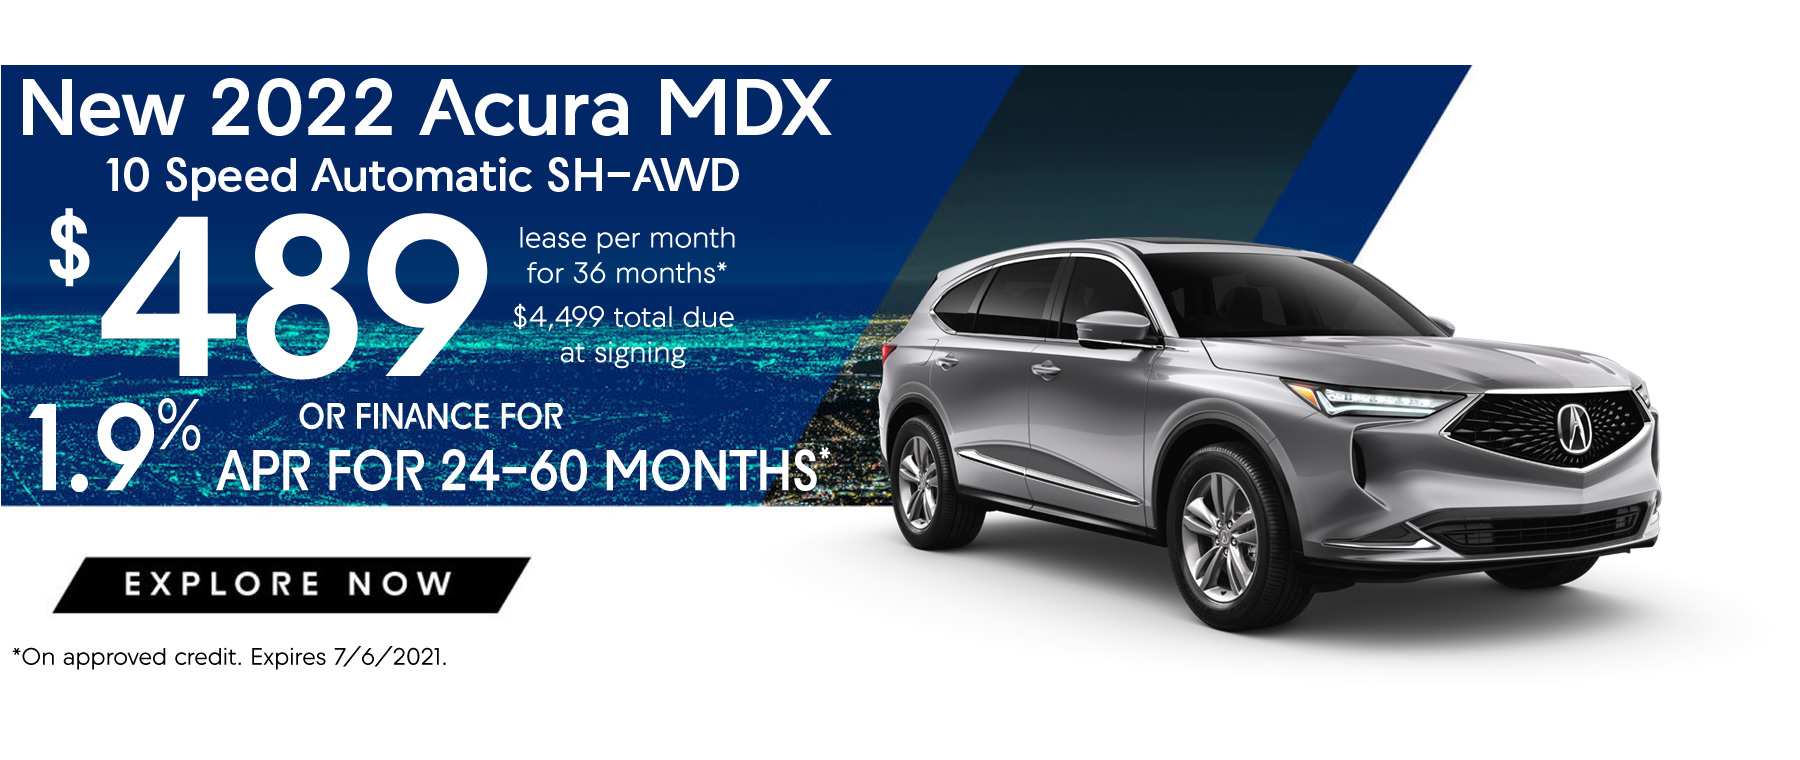 Acura MDX Lease and APR Special